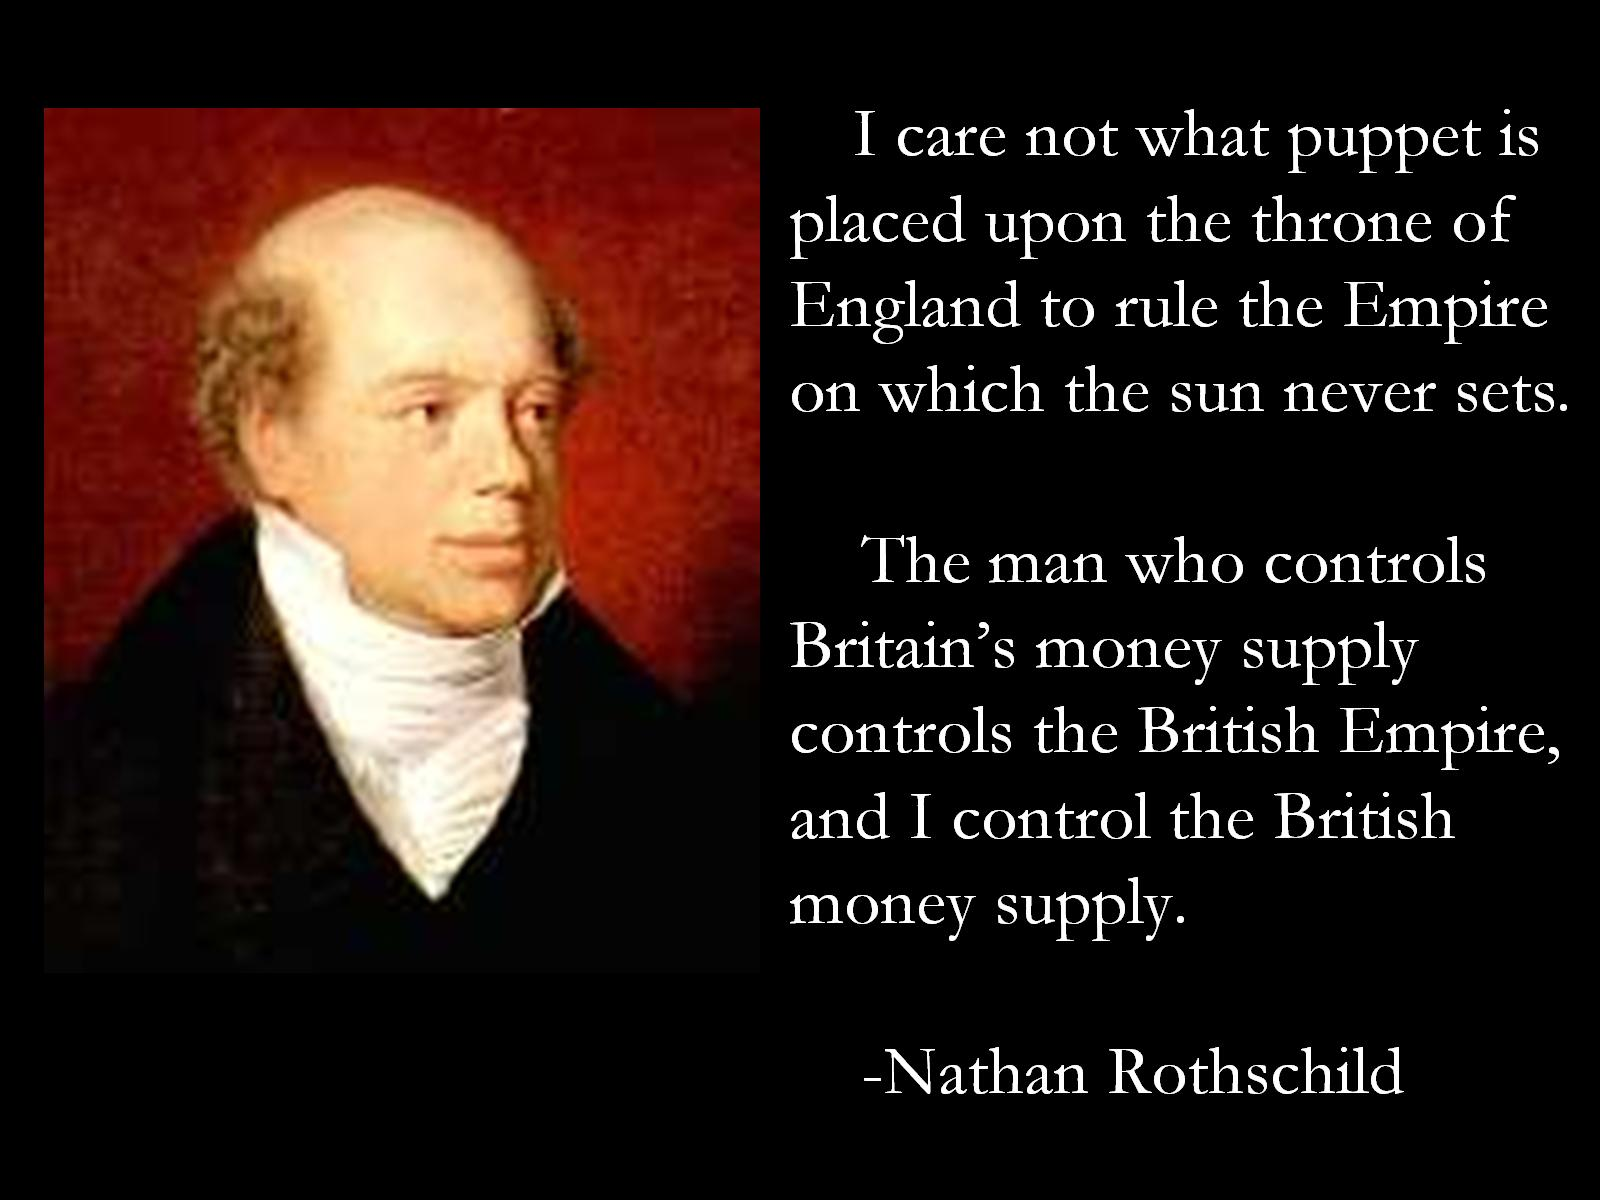 Nathan Meyer Rothschild's quote #1